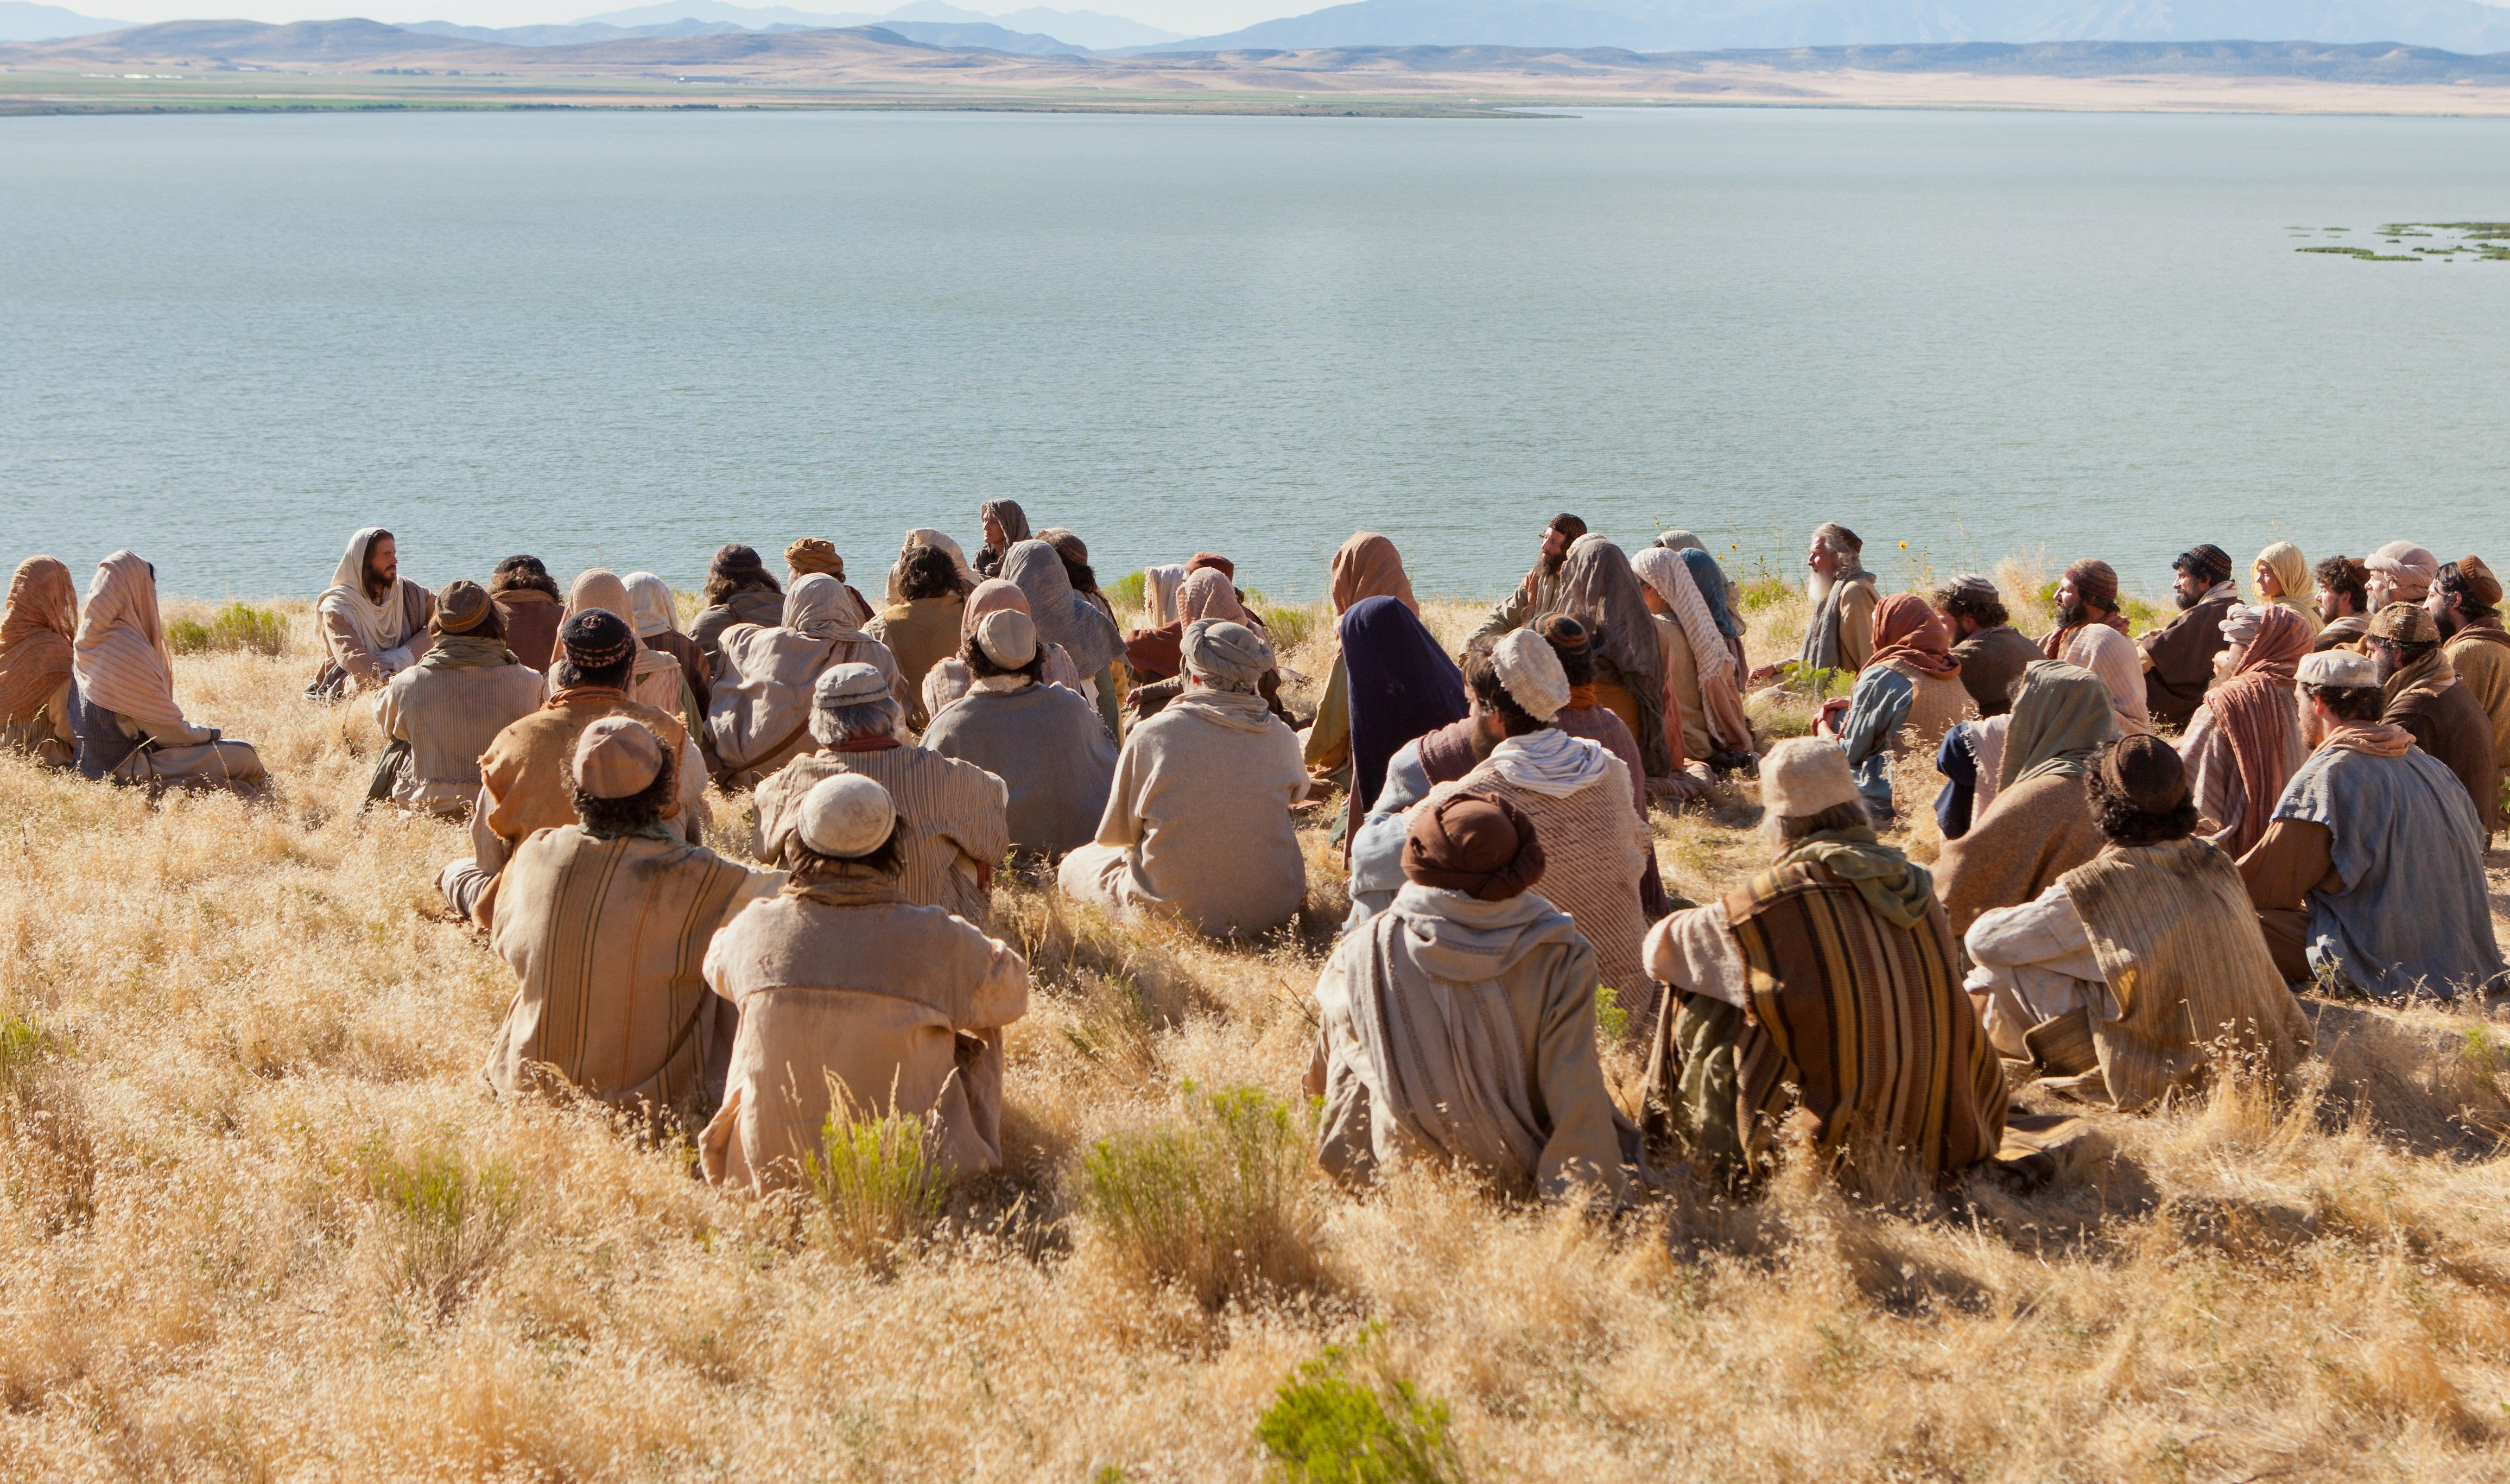 Jesus teaches listeners how to pray and gives the Lord's Prayer.